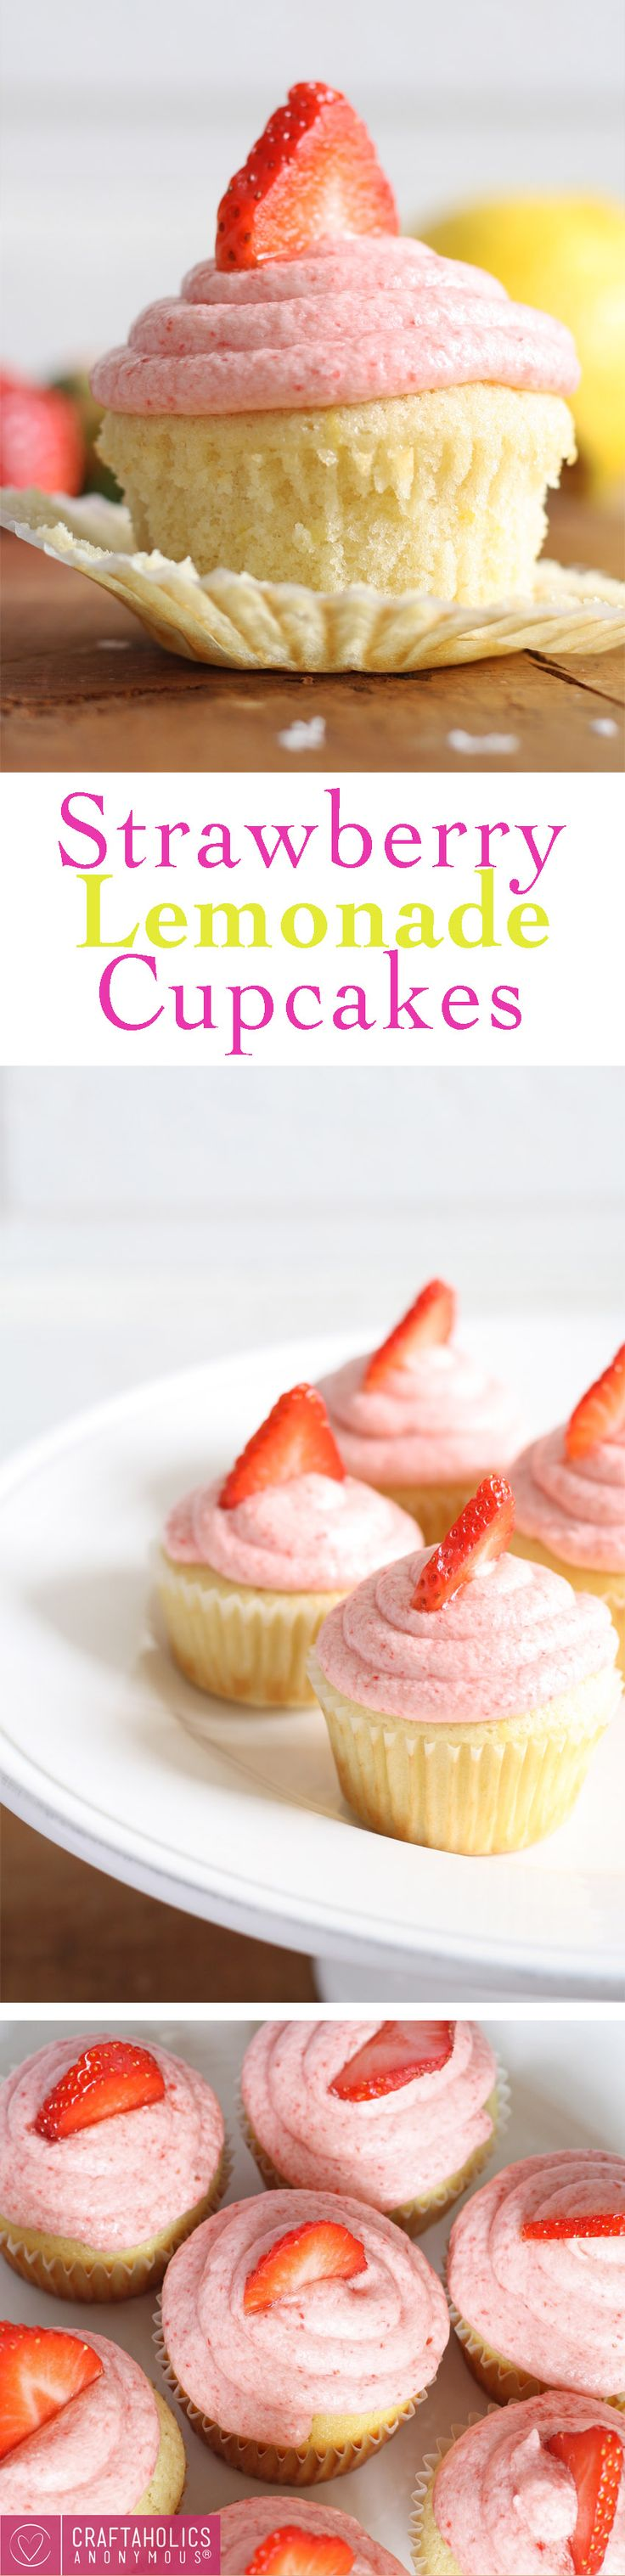 The most Delicious Strawberry Lemonade Cupcakes ever! Tangy and sweet, they your tongue all the way down. One of my all time favorite cupcakes.